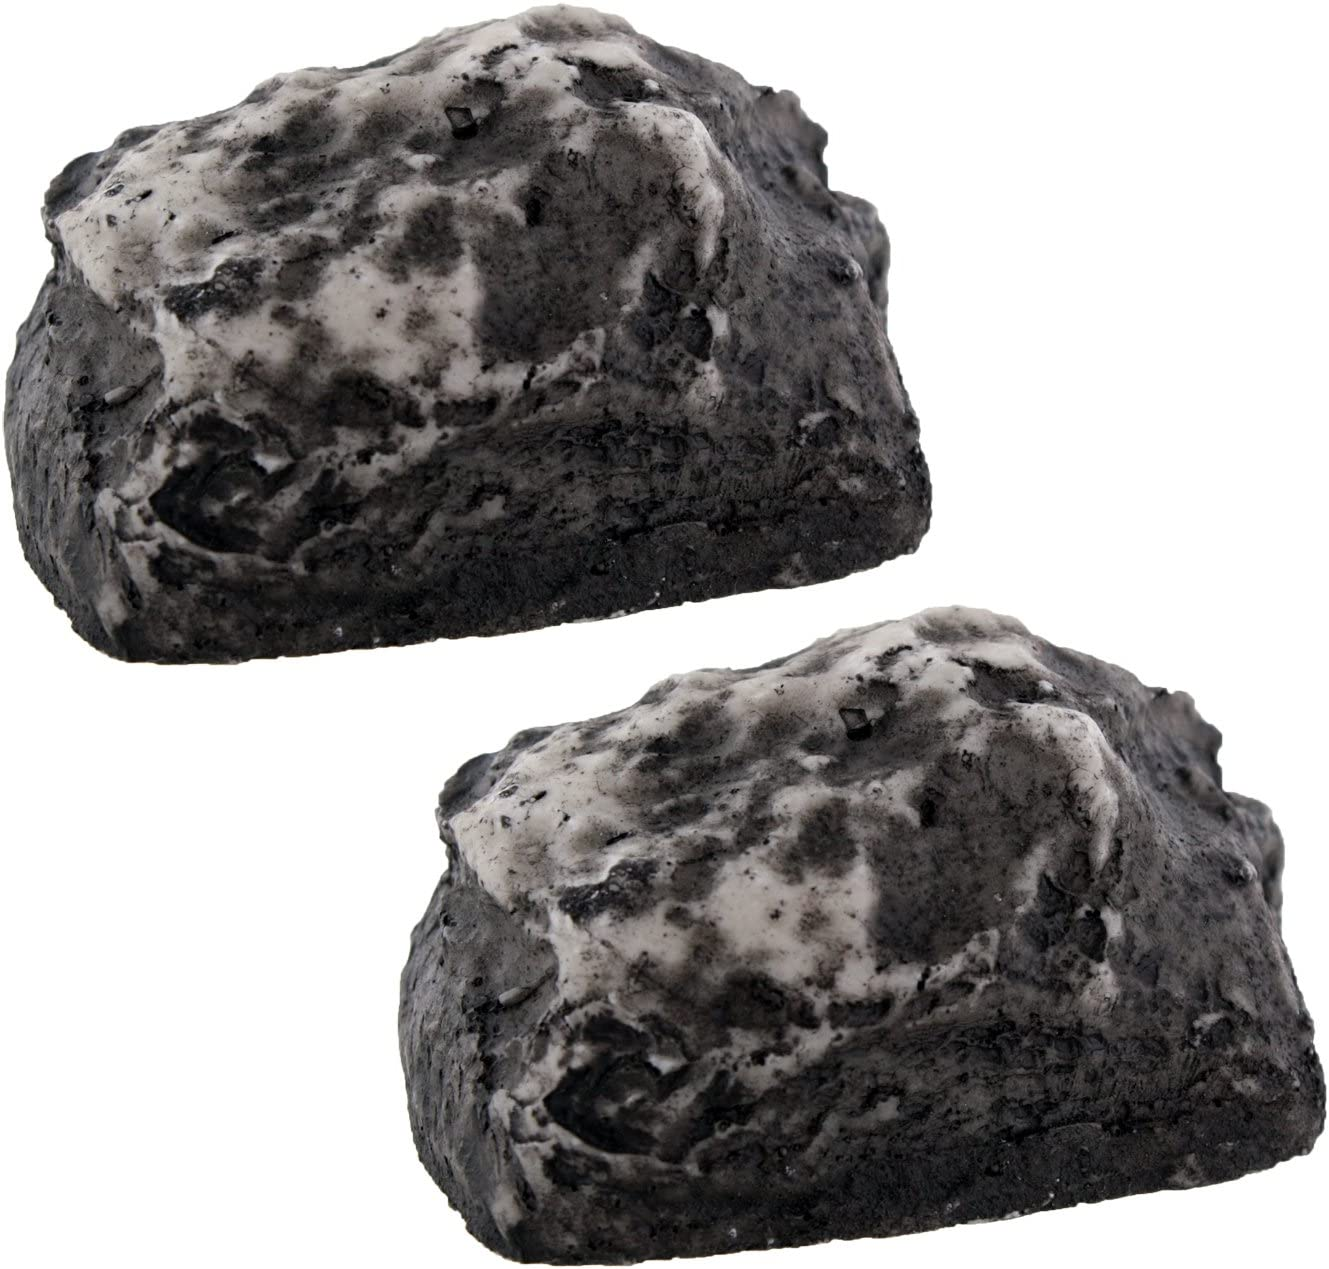 Hide-a-Key Fake Rock - Looks & Feels Like Real Rock, Set of 2: Office Products